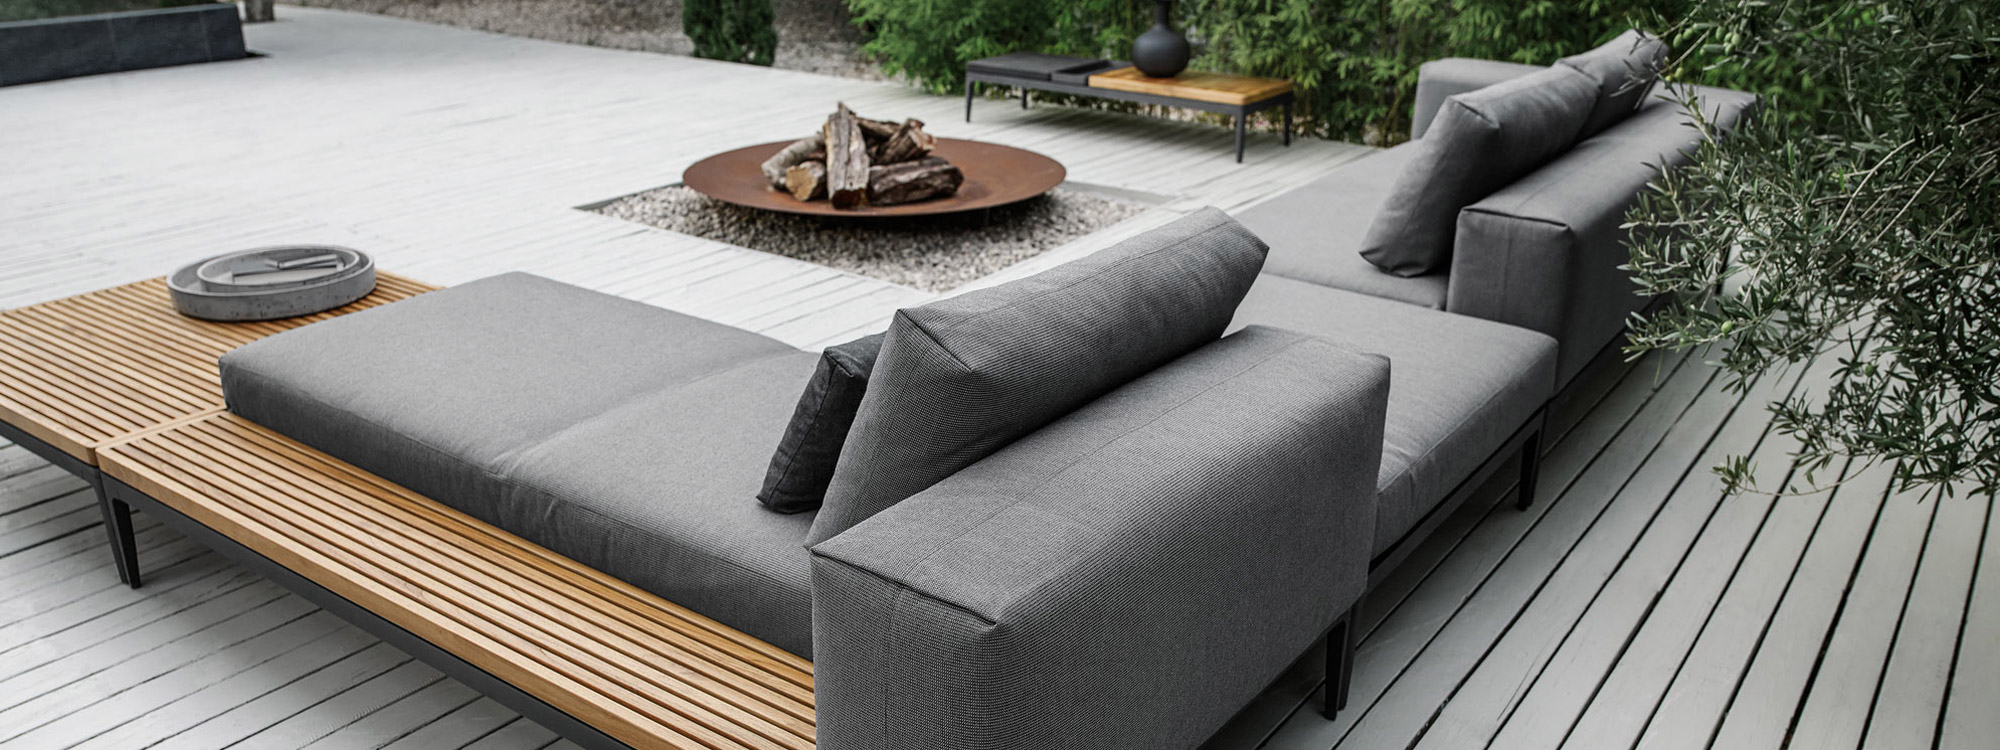 Sofa Bed Los Angeles Patio Furniture Los Angeles Santa Monica Beverly Hills Malibu